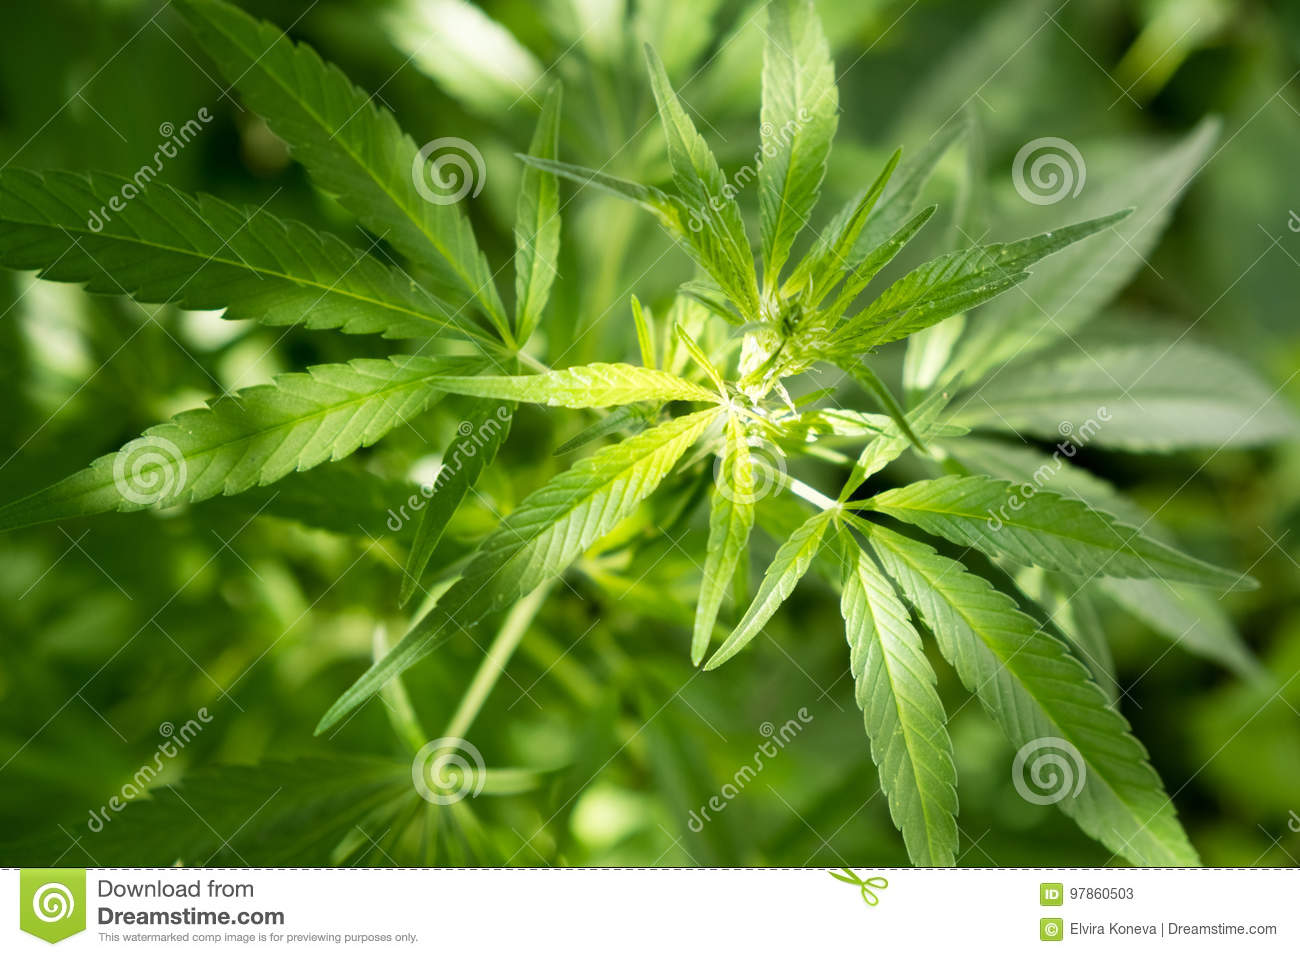 Marijuana leaf background wallpaper, cannabis hemp leaf outdoors